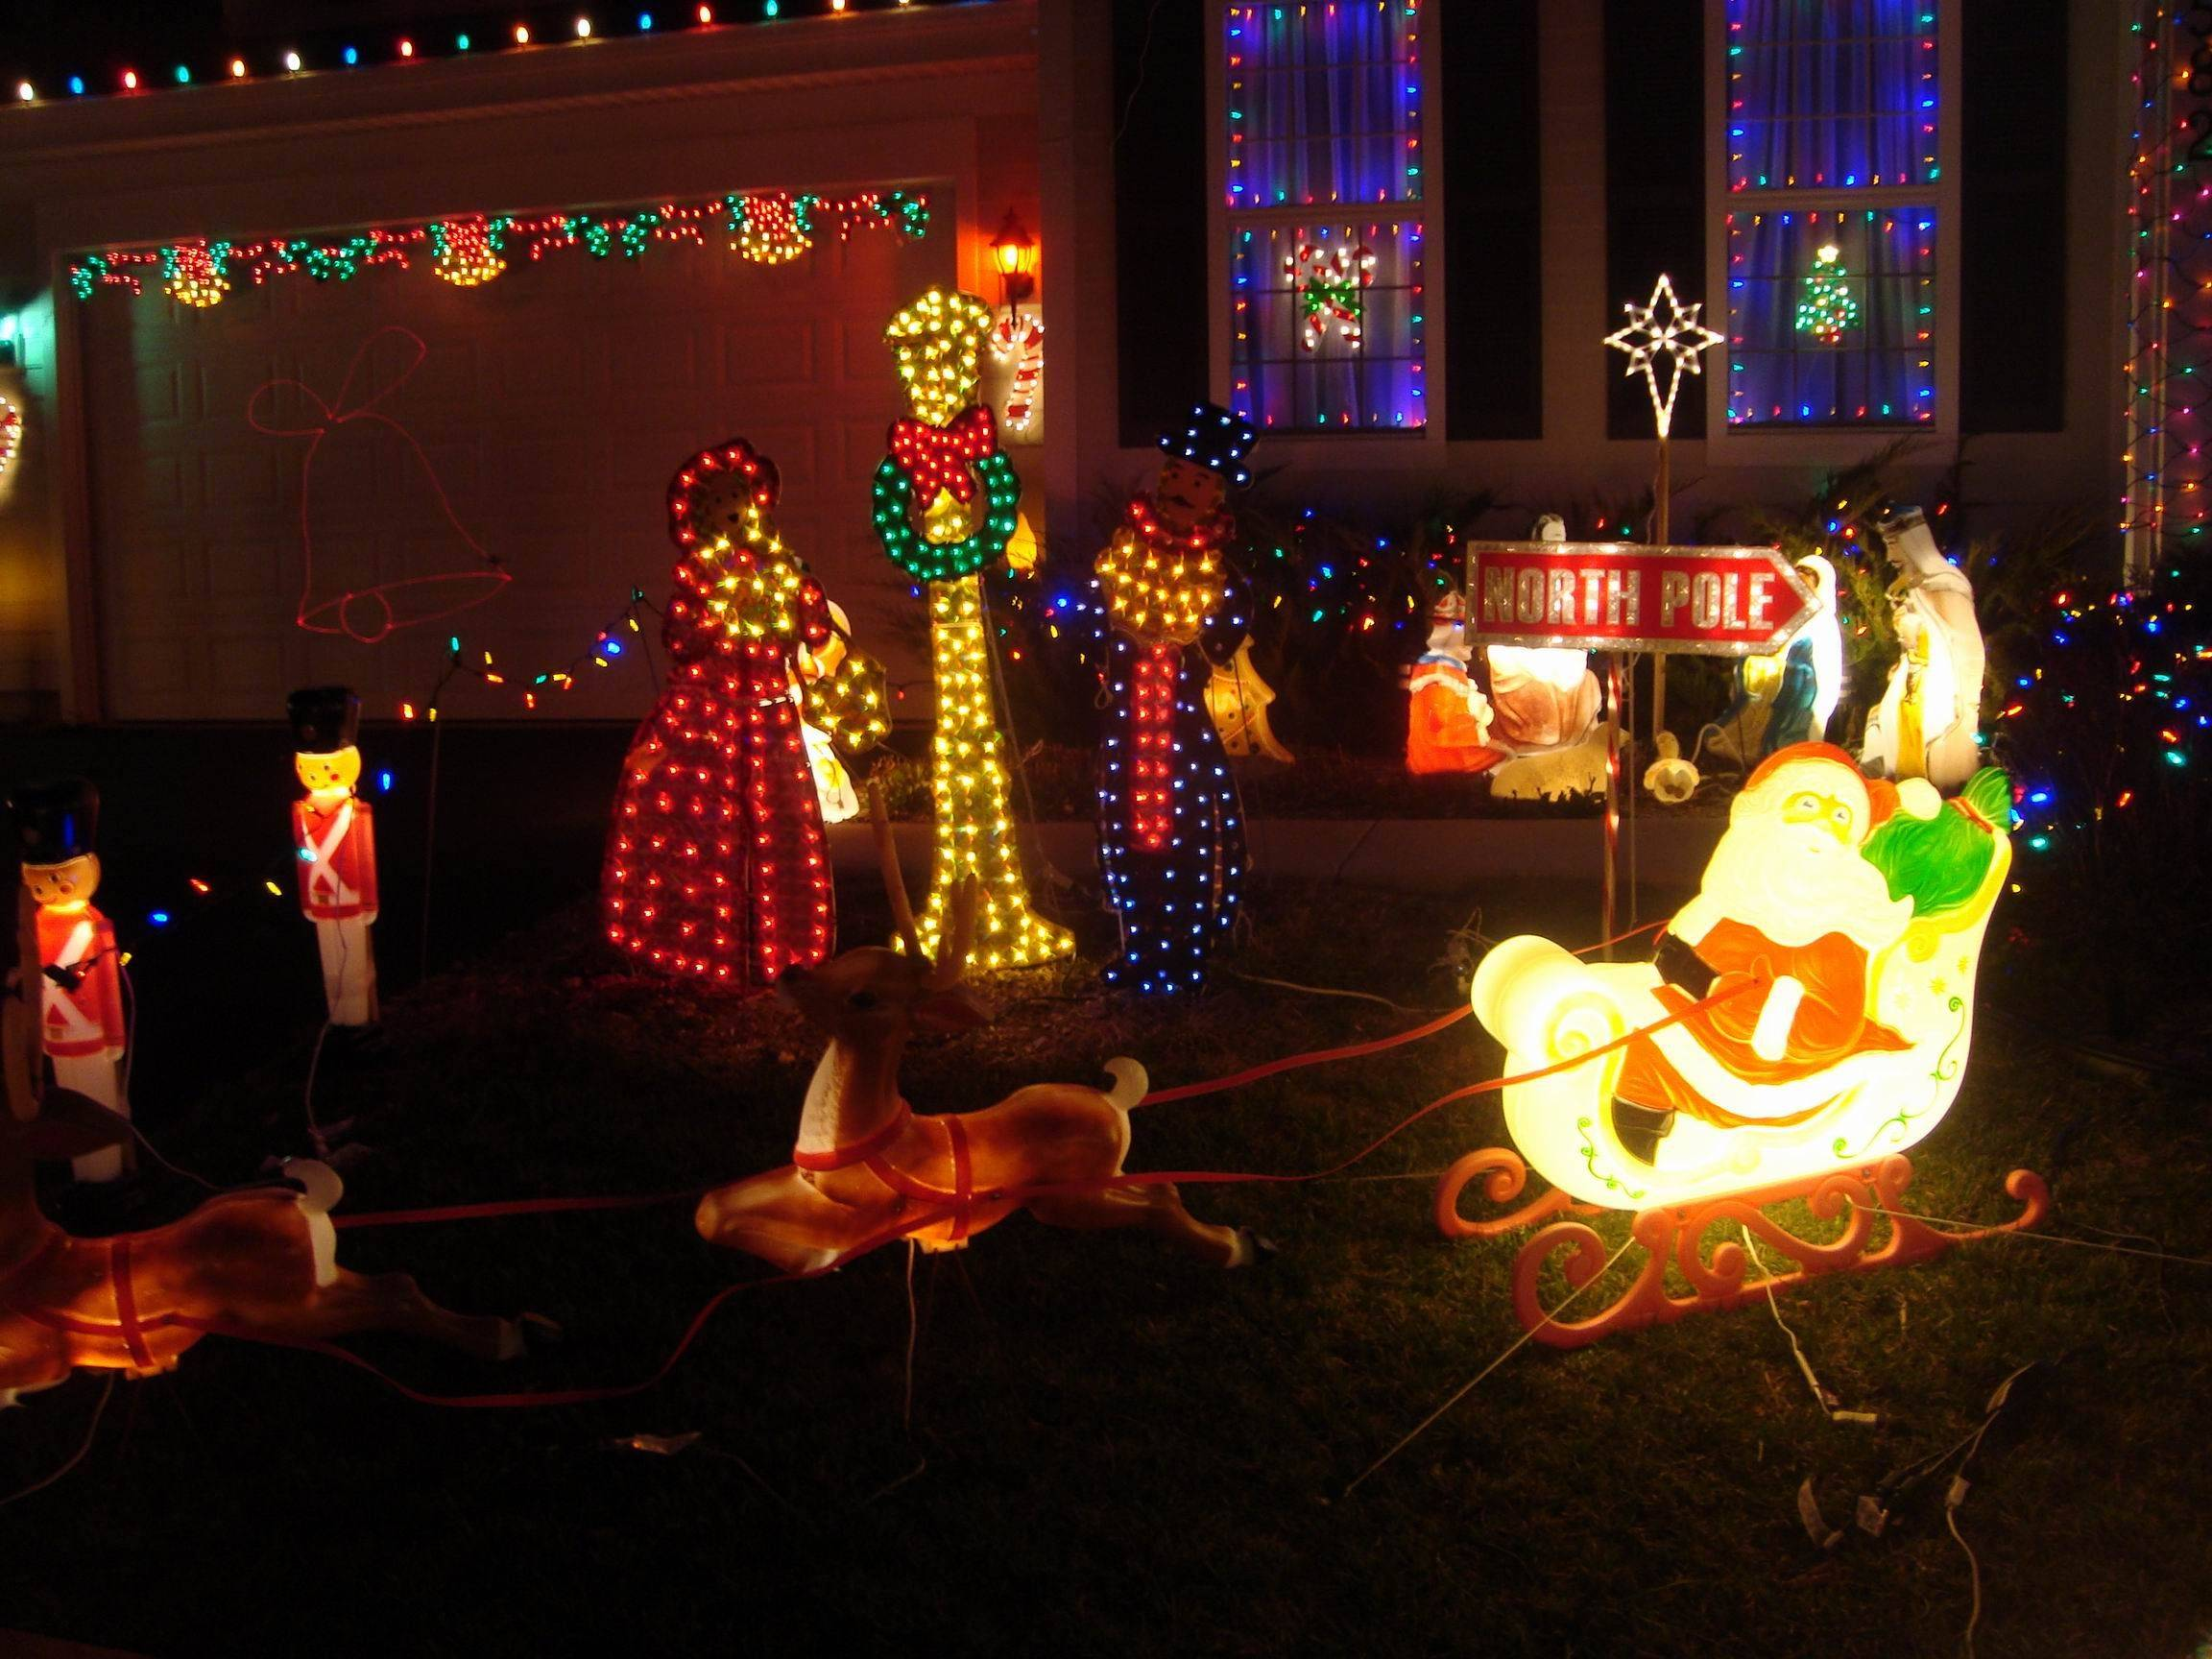 Brian Hurley's display at 582 Wexford Drive in Elgin uses 8,350 lights.